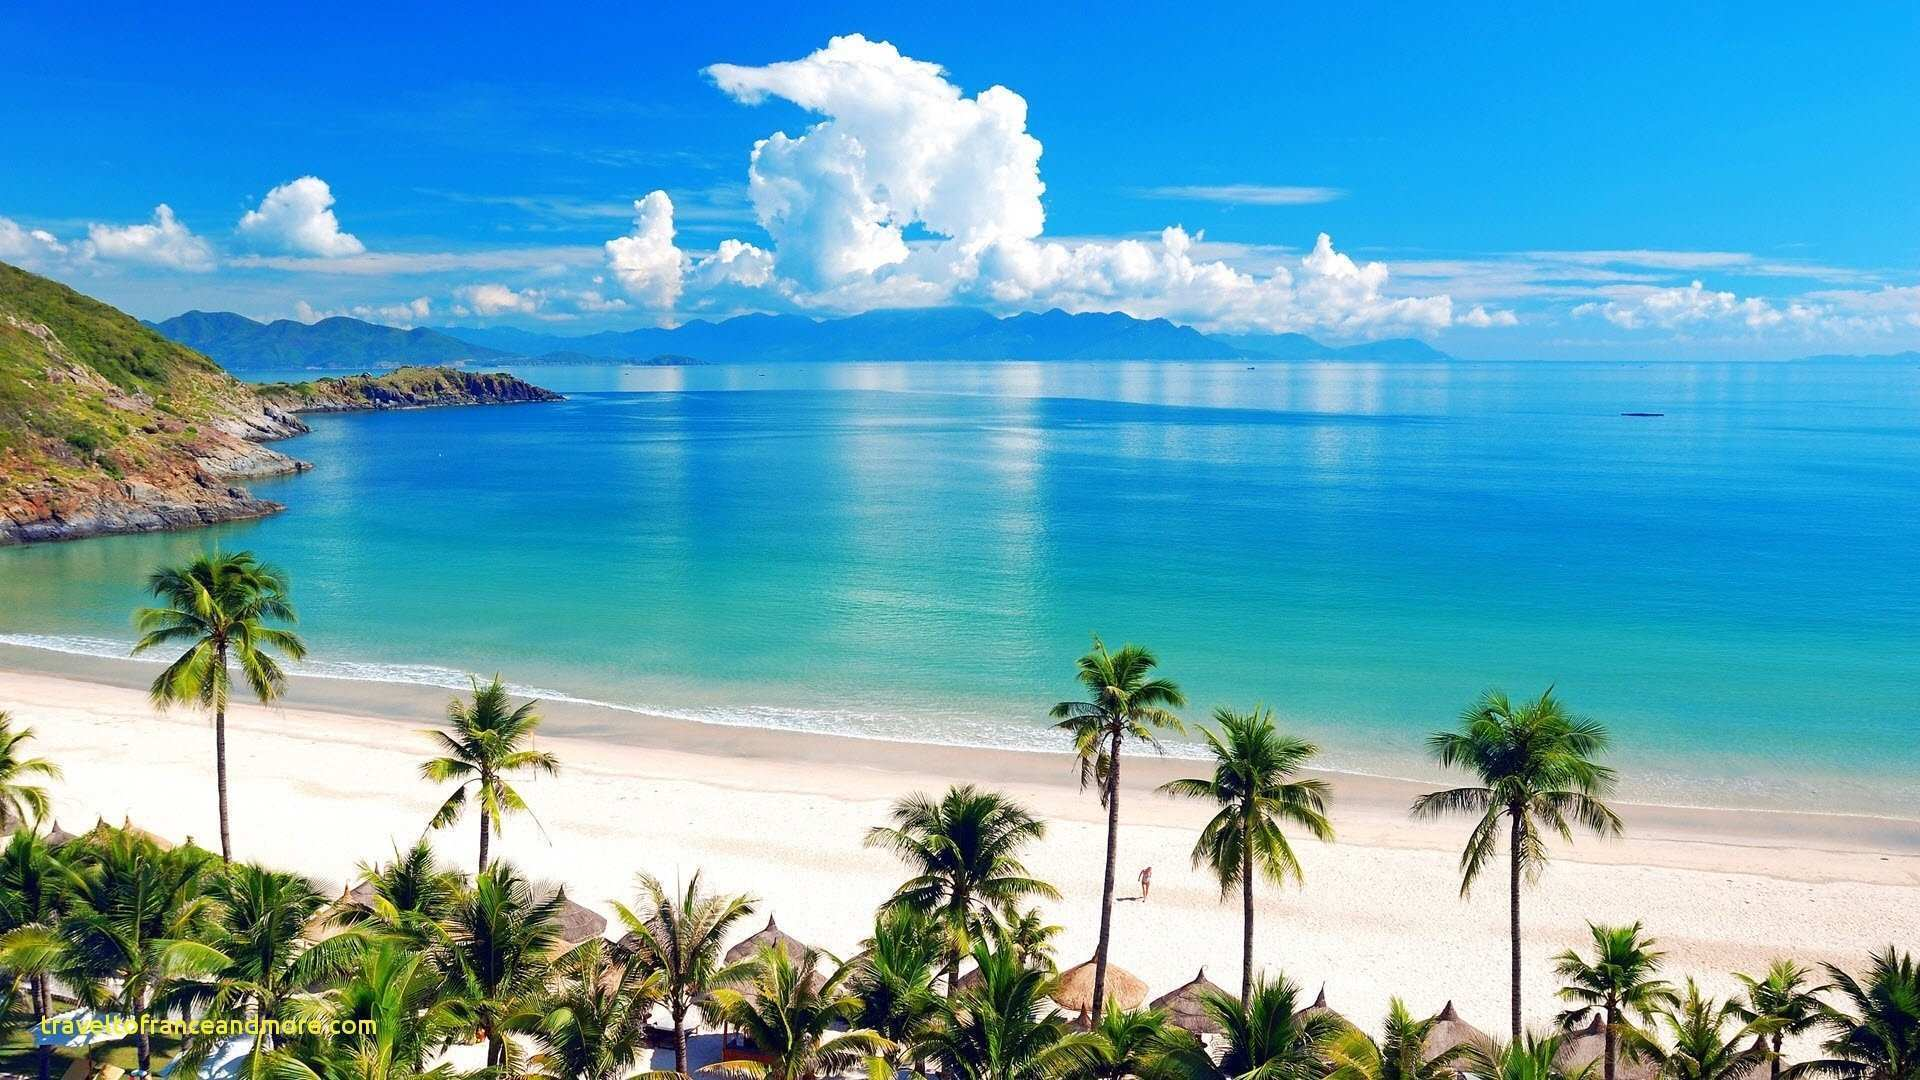 Free Beach Wallpaper Unique Free Tropical Beach Wallpaper – Traveller